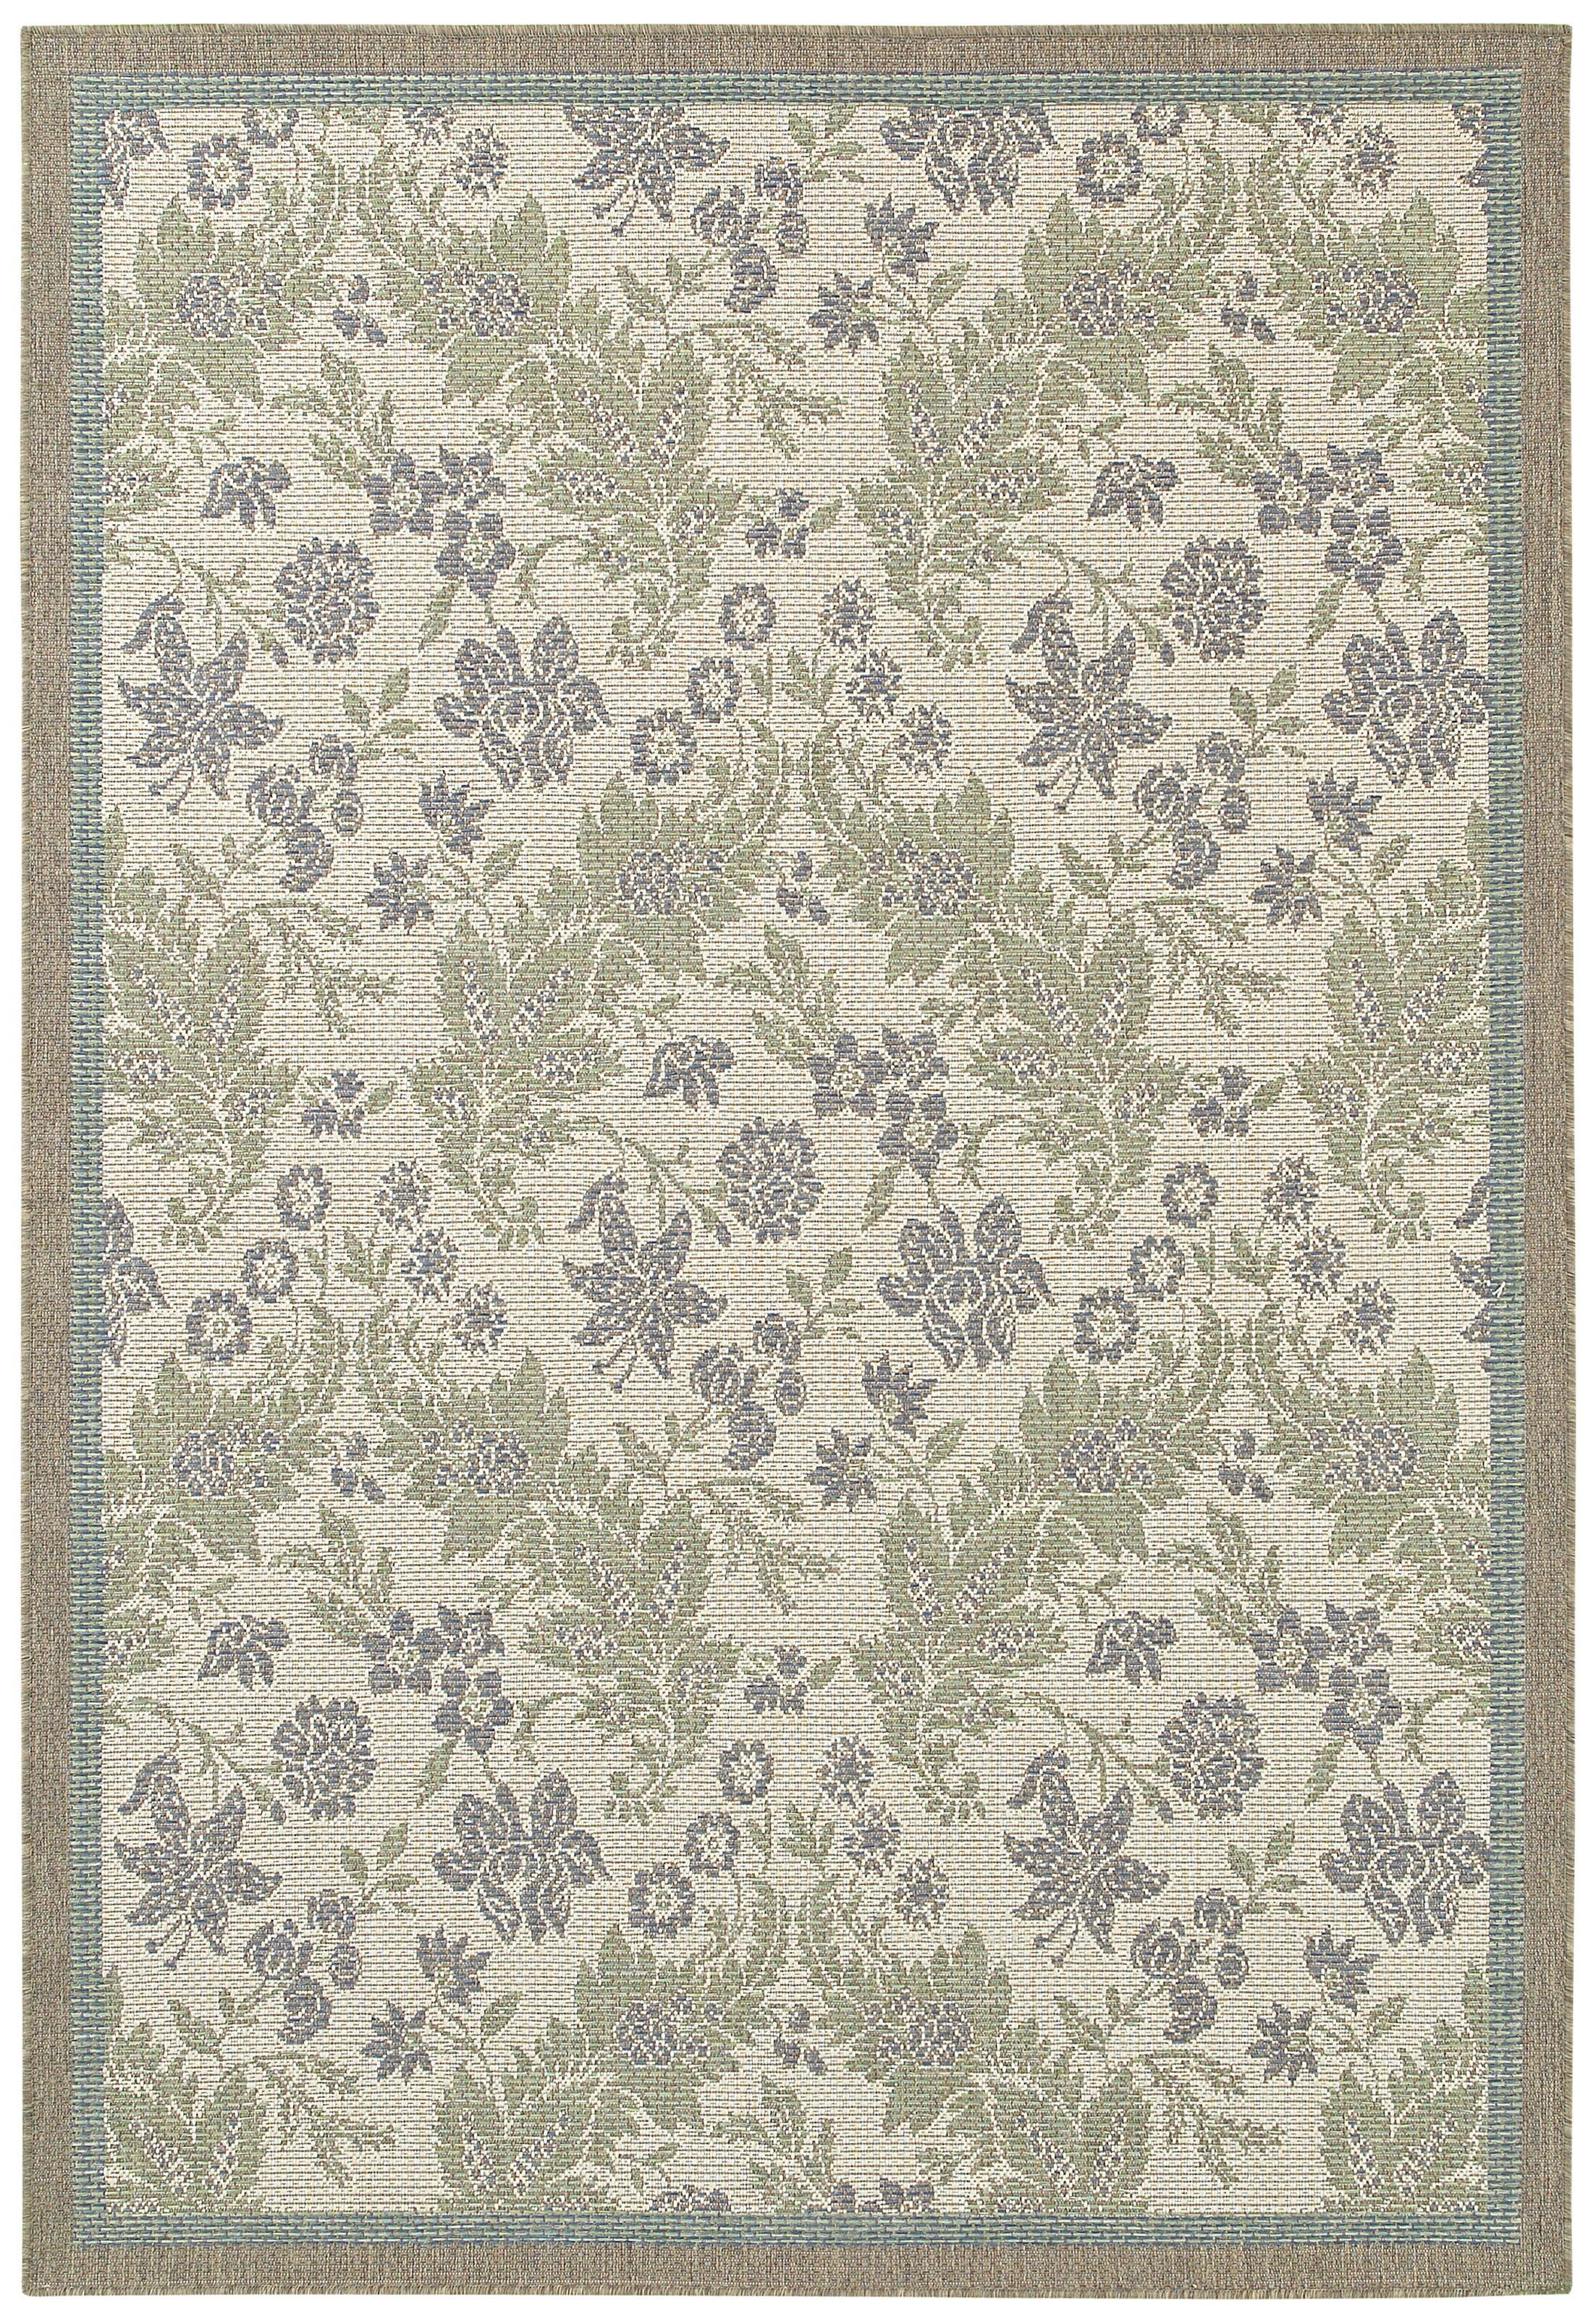 Avallon Champagne Indoor/Outdoor Area Rug Rug Size: Rectangle 5'10